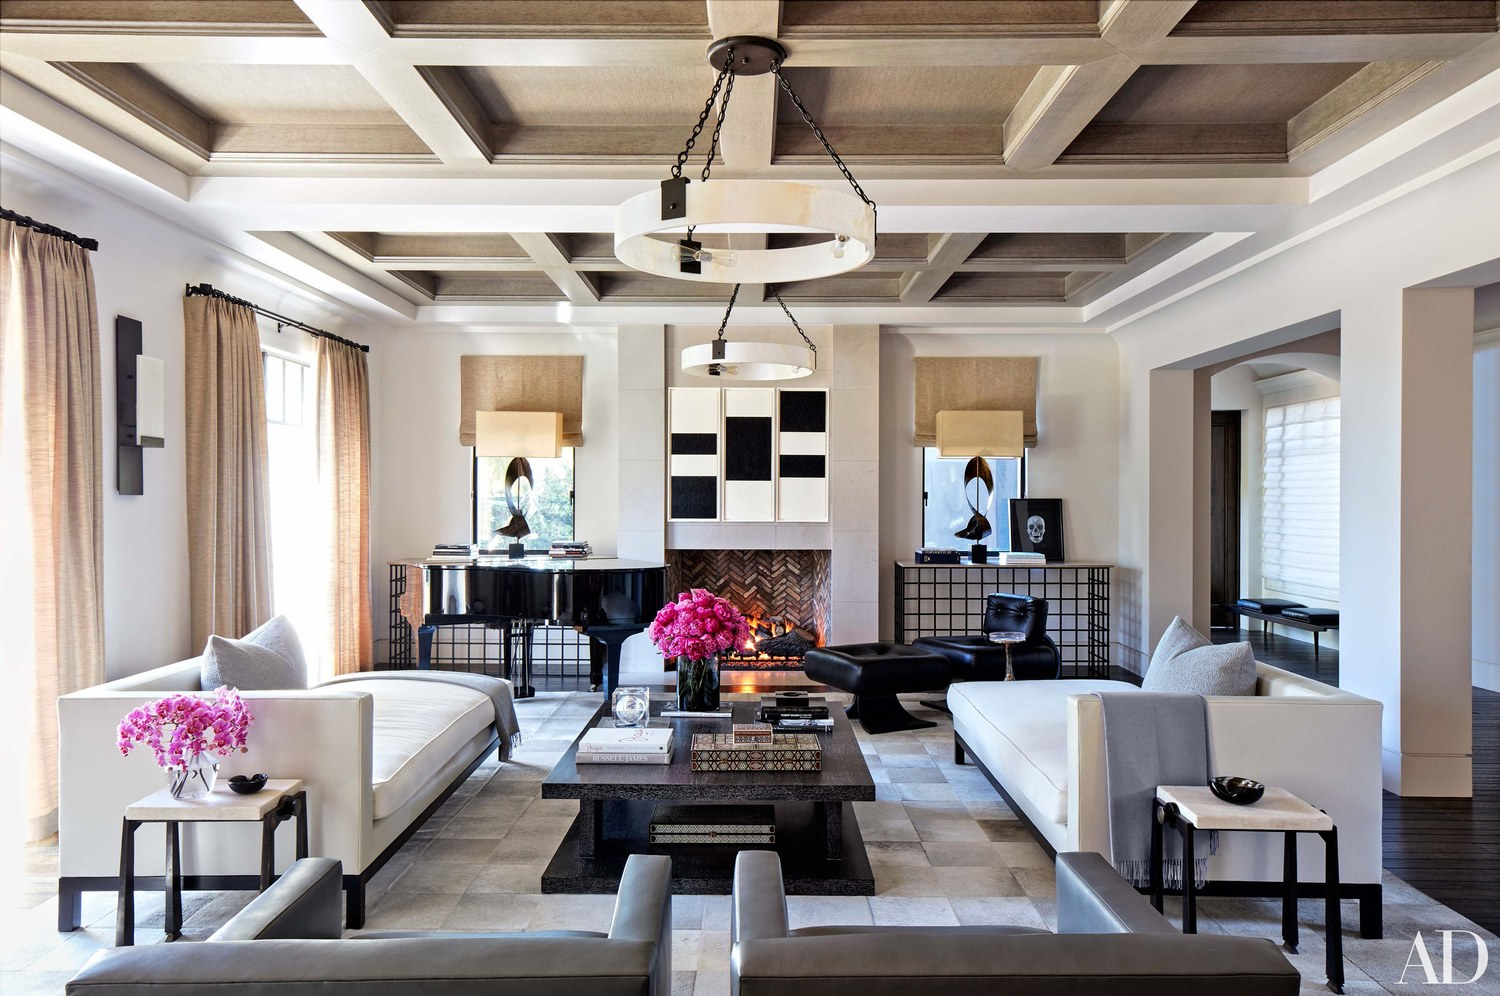 10 of the Most Amazing Living Room Decor Ideas of 2016